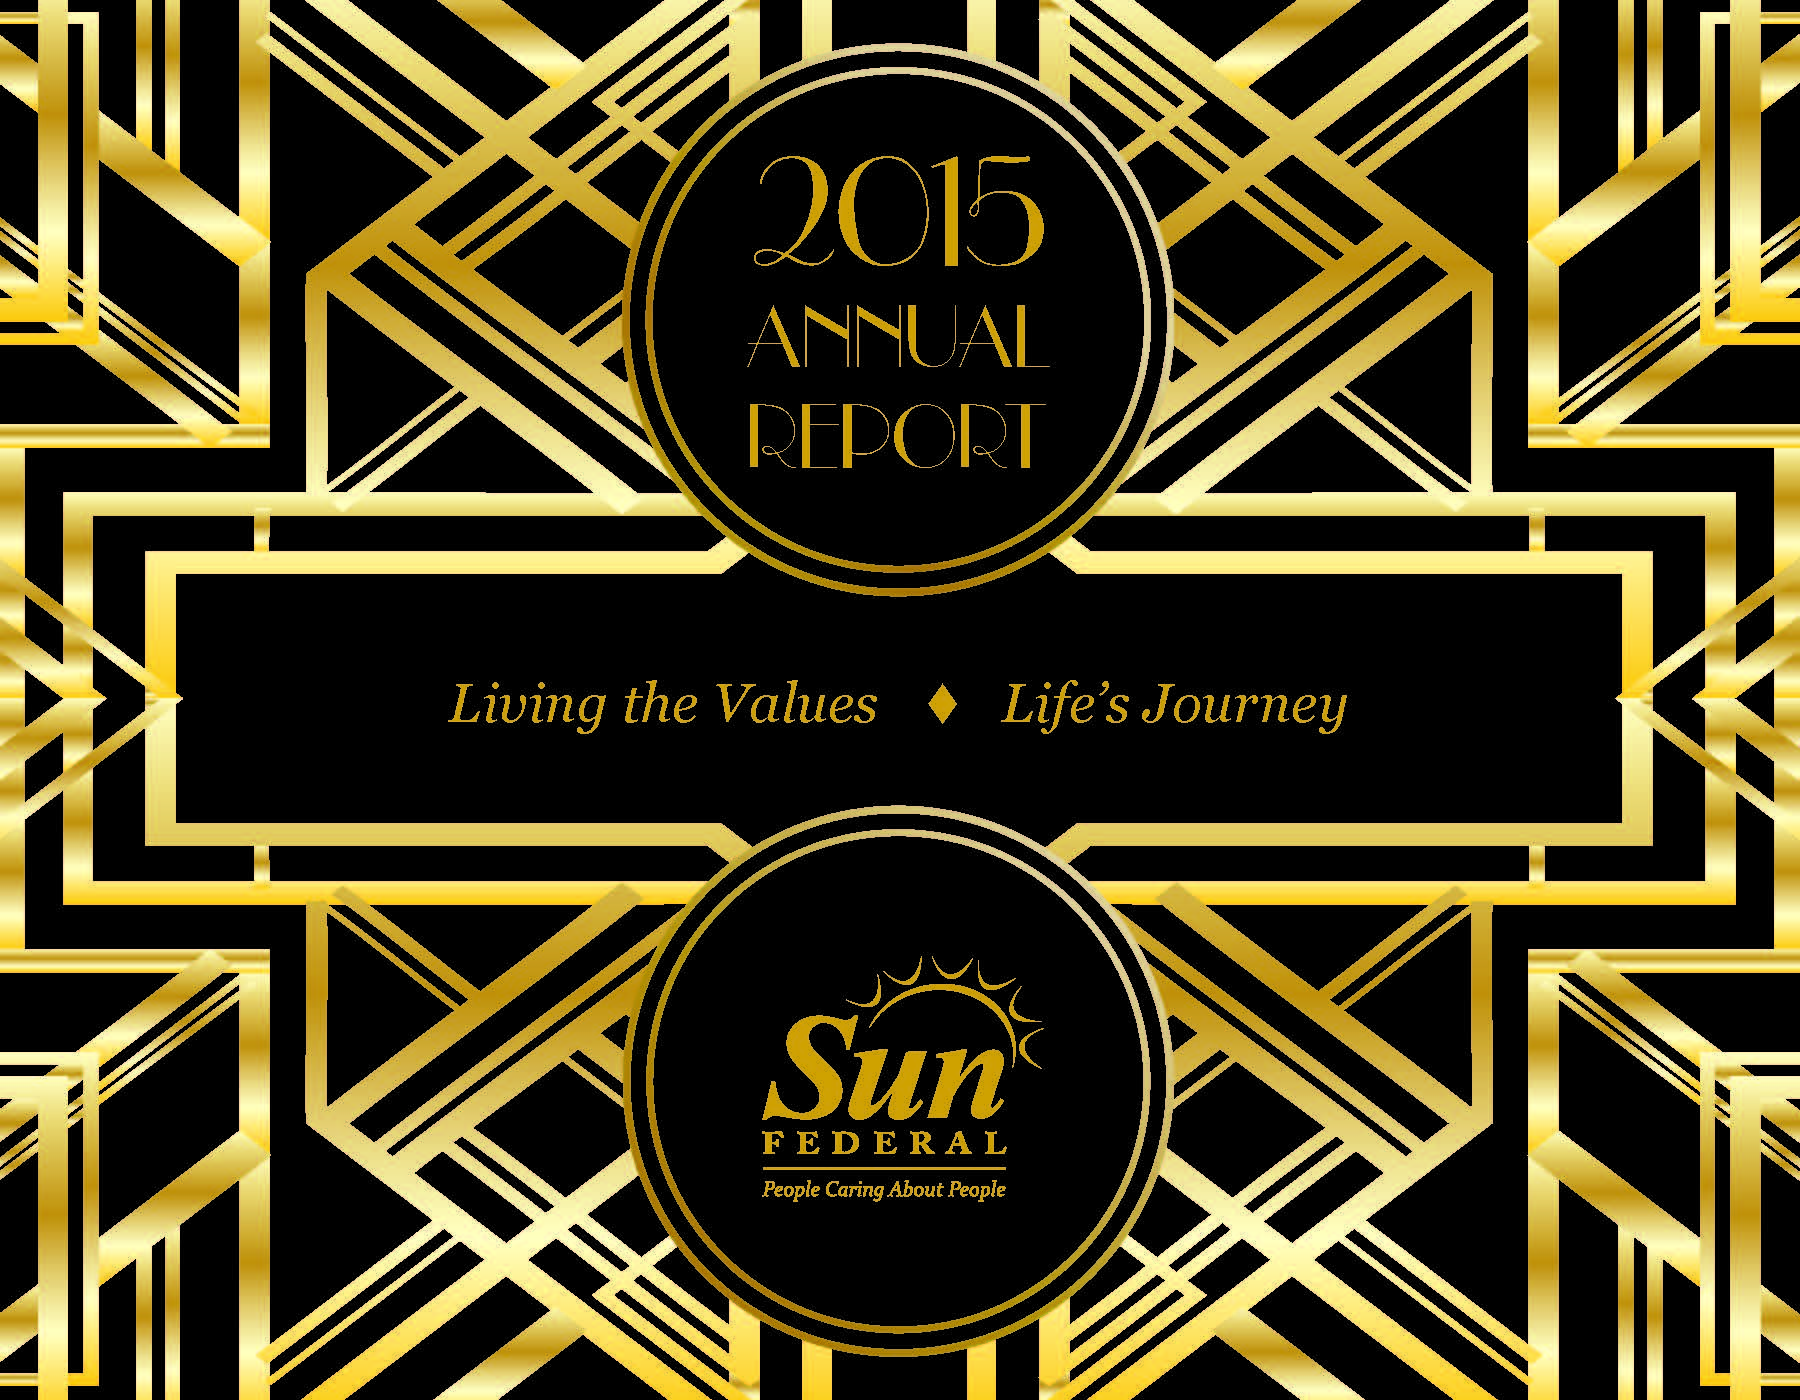 Living the Values. Life's Journey - the 2015 Annual Reprot